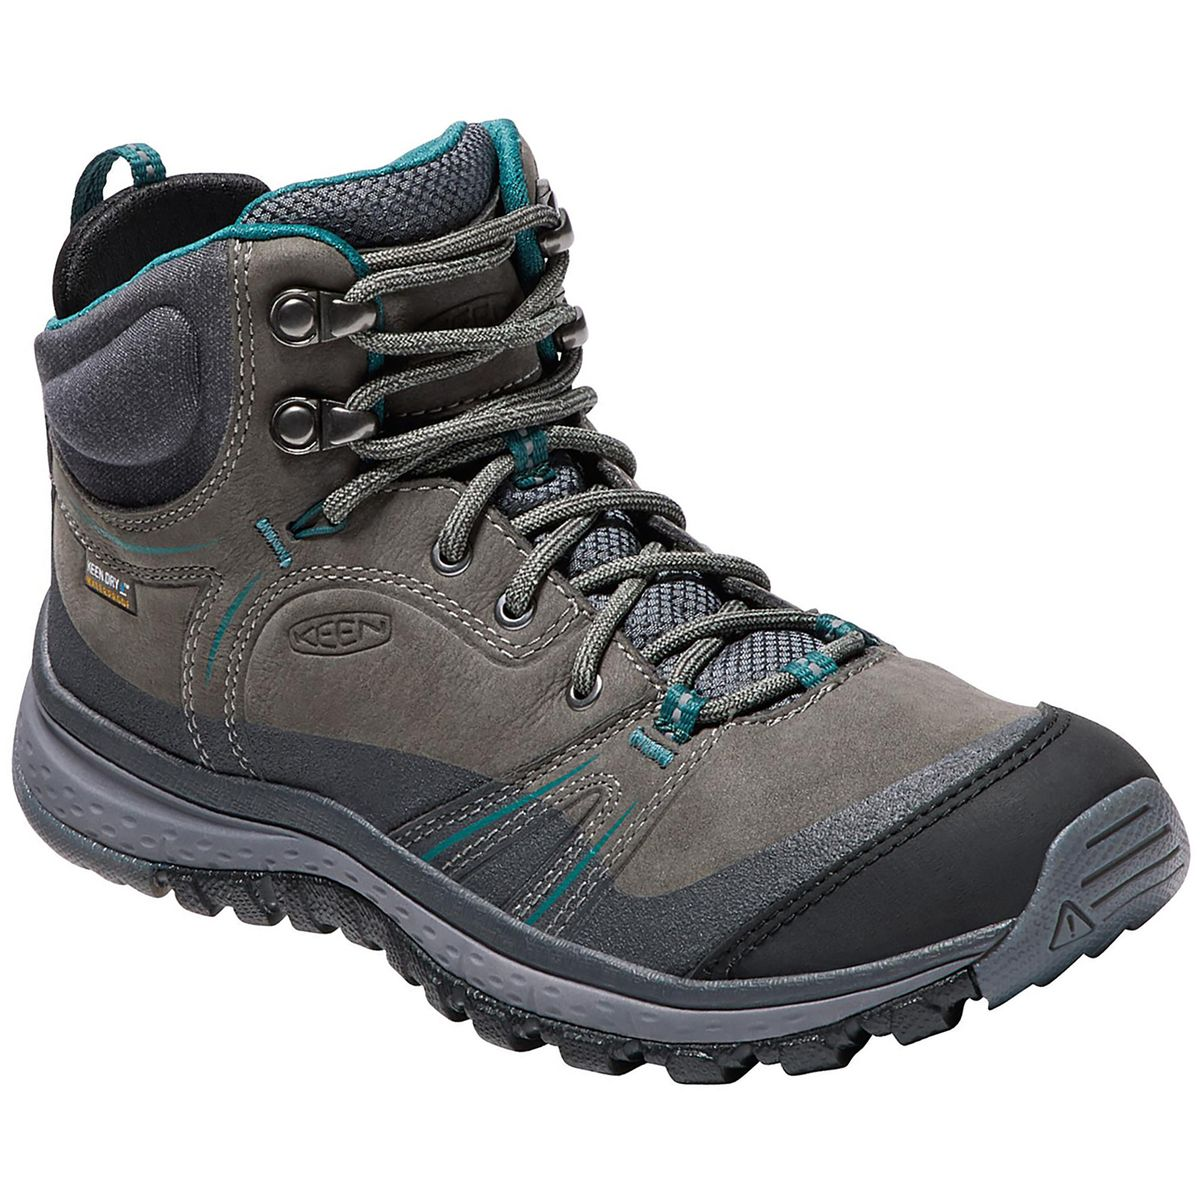 Scenic Oregon 7 Day Road Trip Exploring the Mountains and Coast- Womens Boots